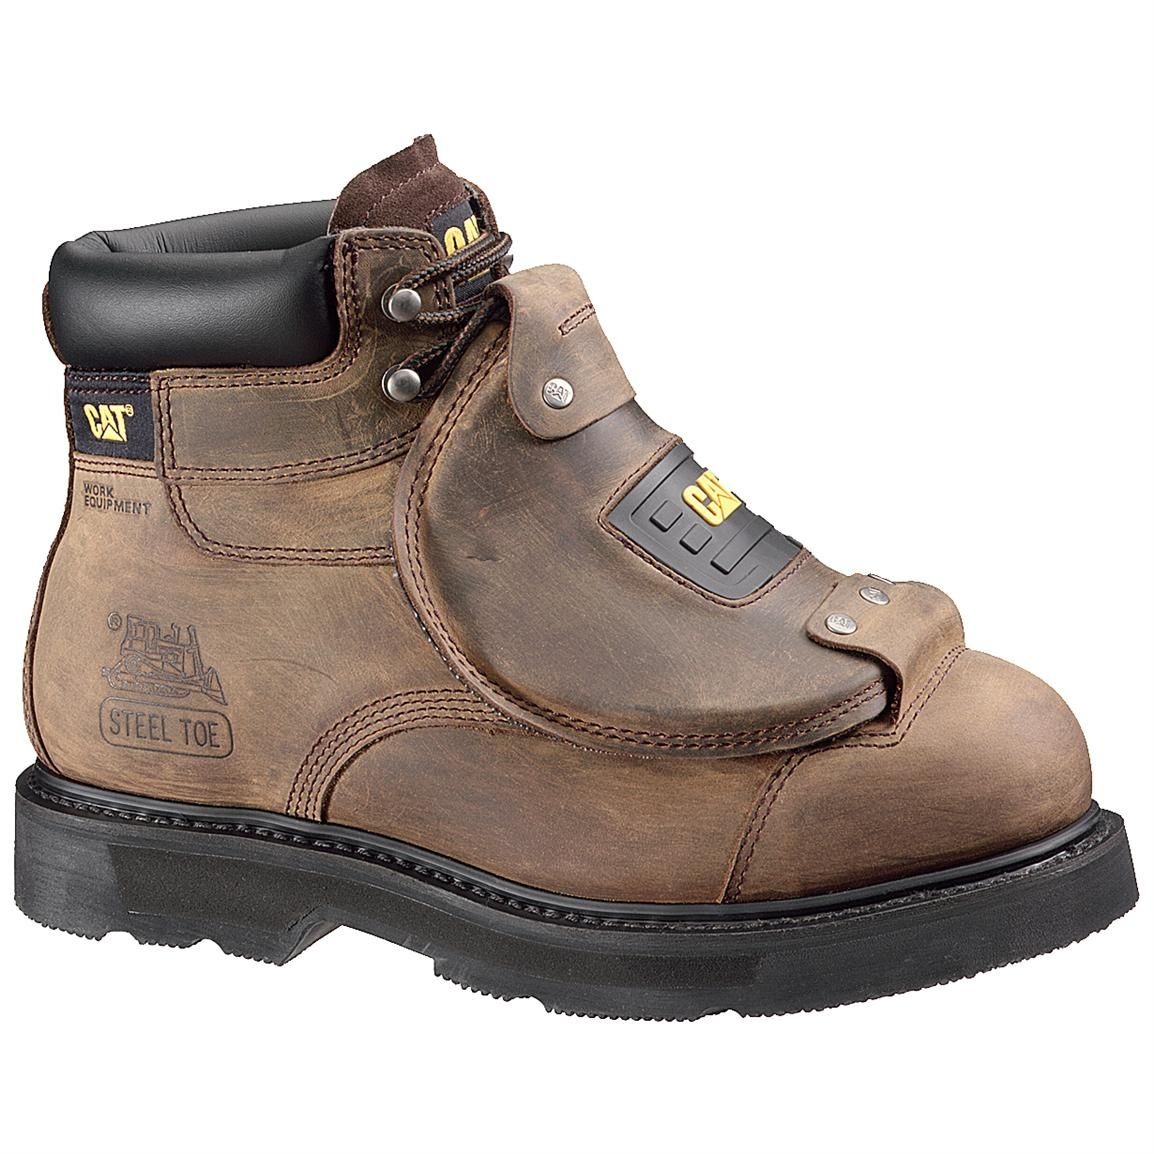 Men's CAT® 6 inch Assault Steel Toe Work Boots, Brown | Toe, Steel ...